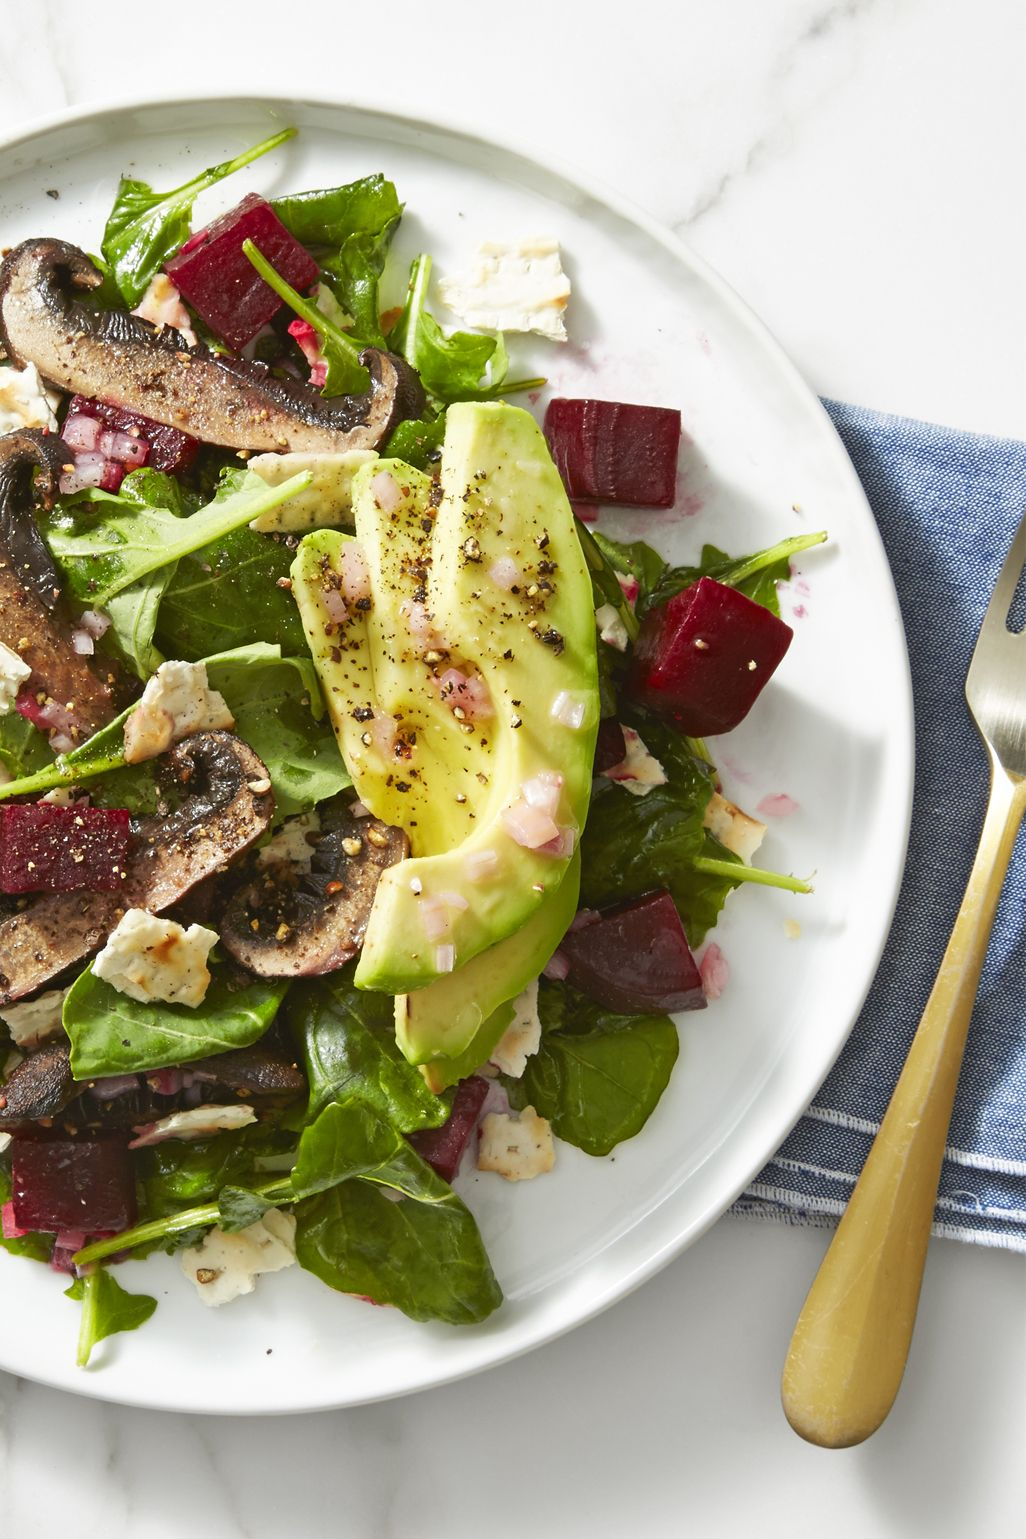 Beet, Mushroom and Avocado Salad